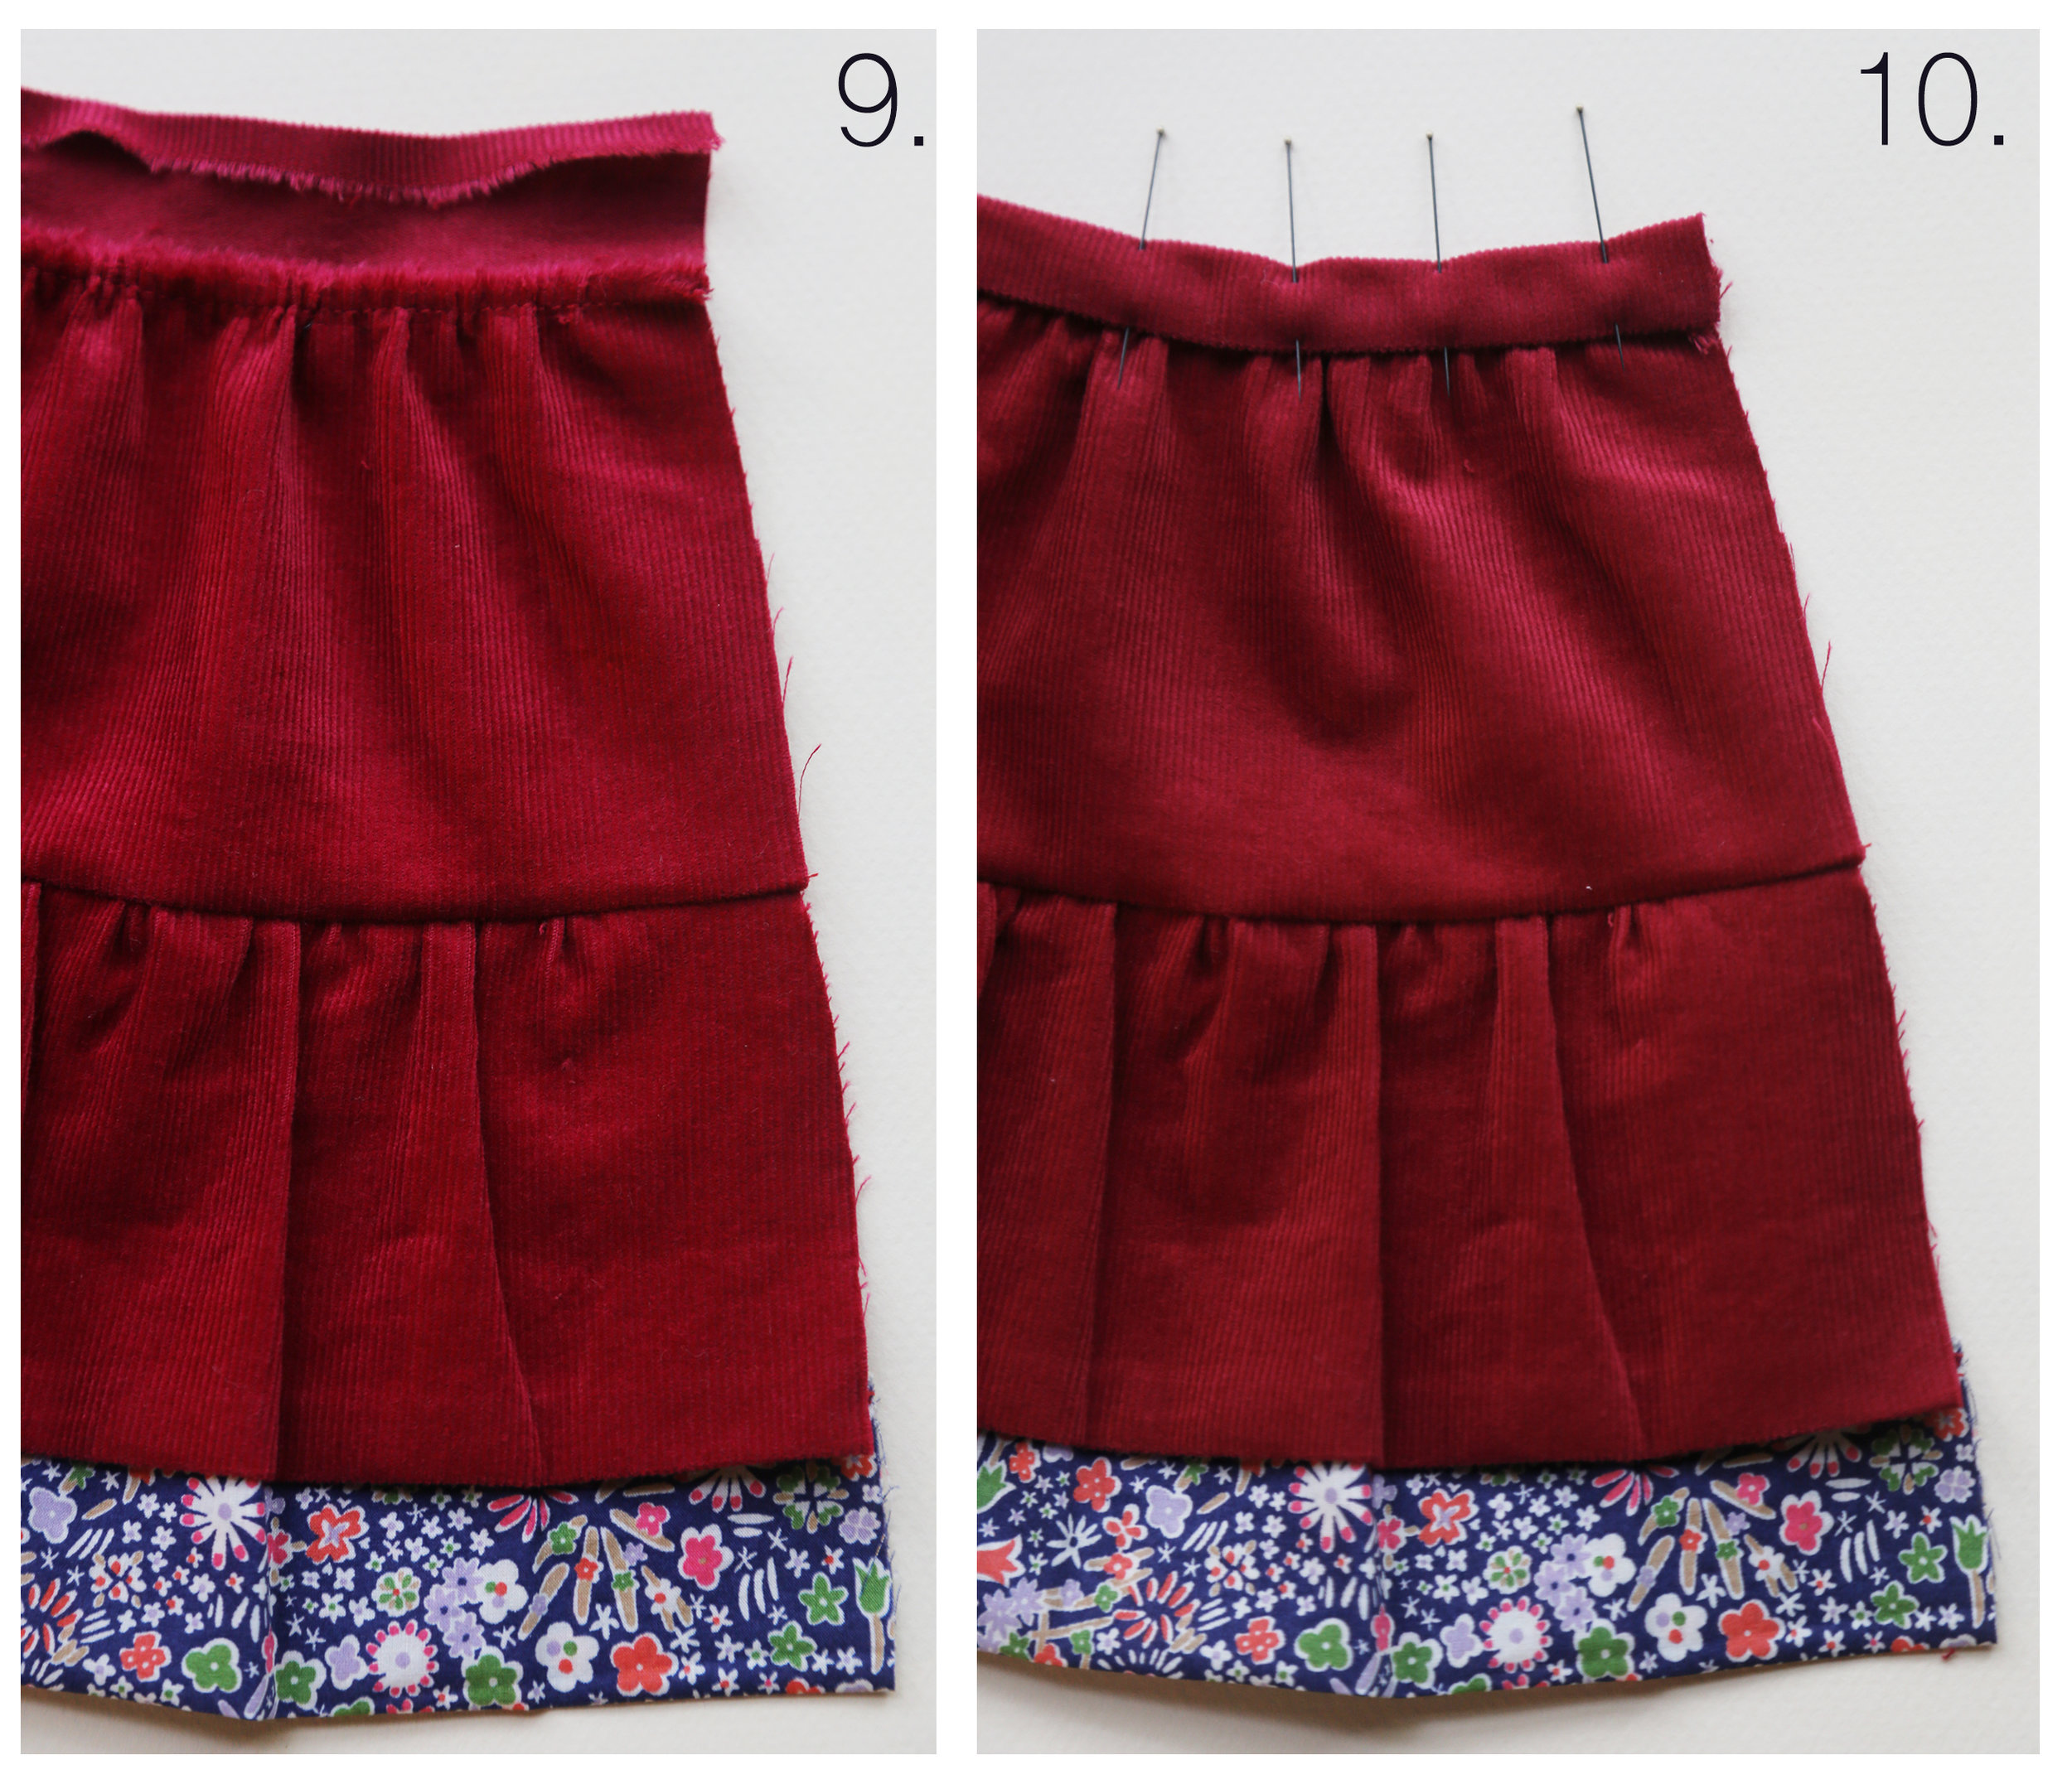 "Step-by-step tutorial on how to sew a tiered skirt for an 18"" doll, by Petit Gosset"